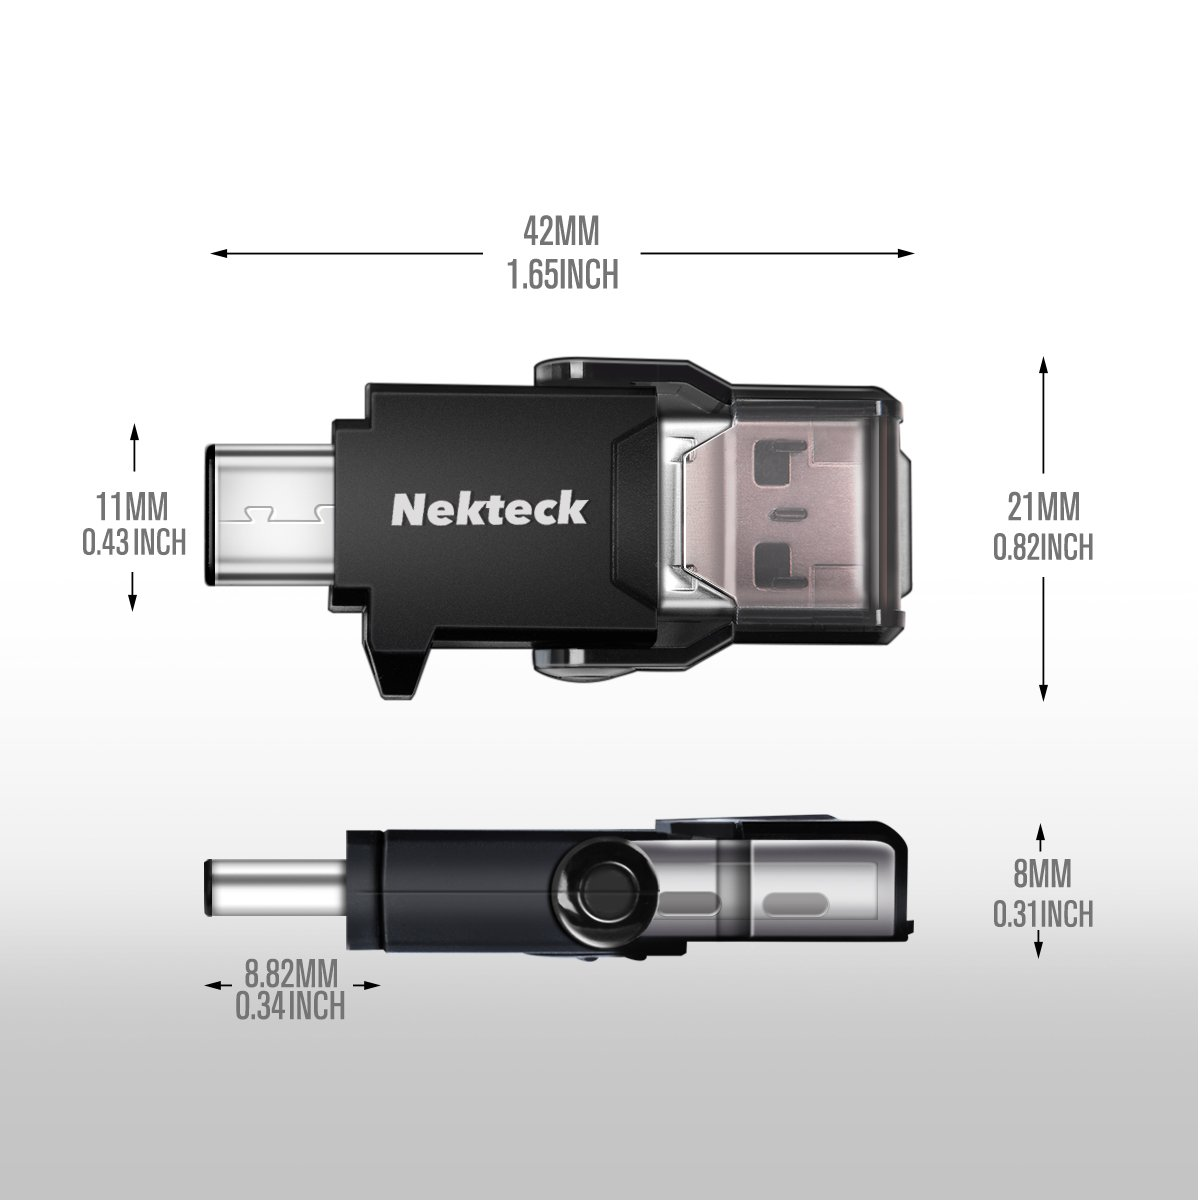 Nekteck USB Type C OTG Micro SD Card Reader with Additional Standard USB Port Connector (Micro SD Card is NOT Included) Samsung Galaxy Note 8 / S8/ S8 Plus, S9/ S9 Plus Pixel 2 More by Nekteck (Image #8)